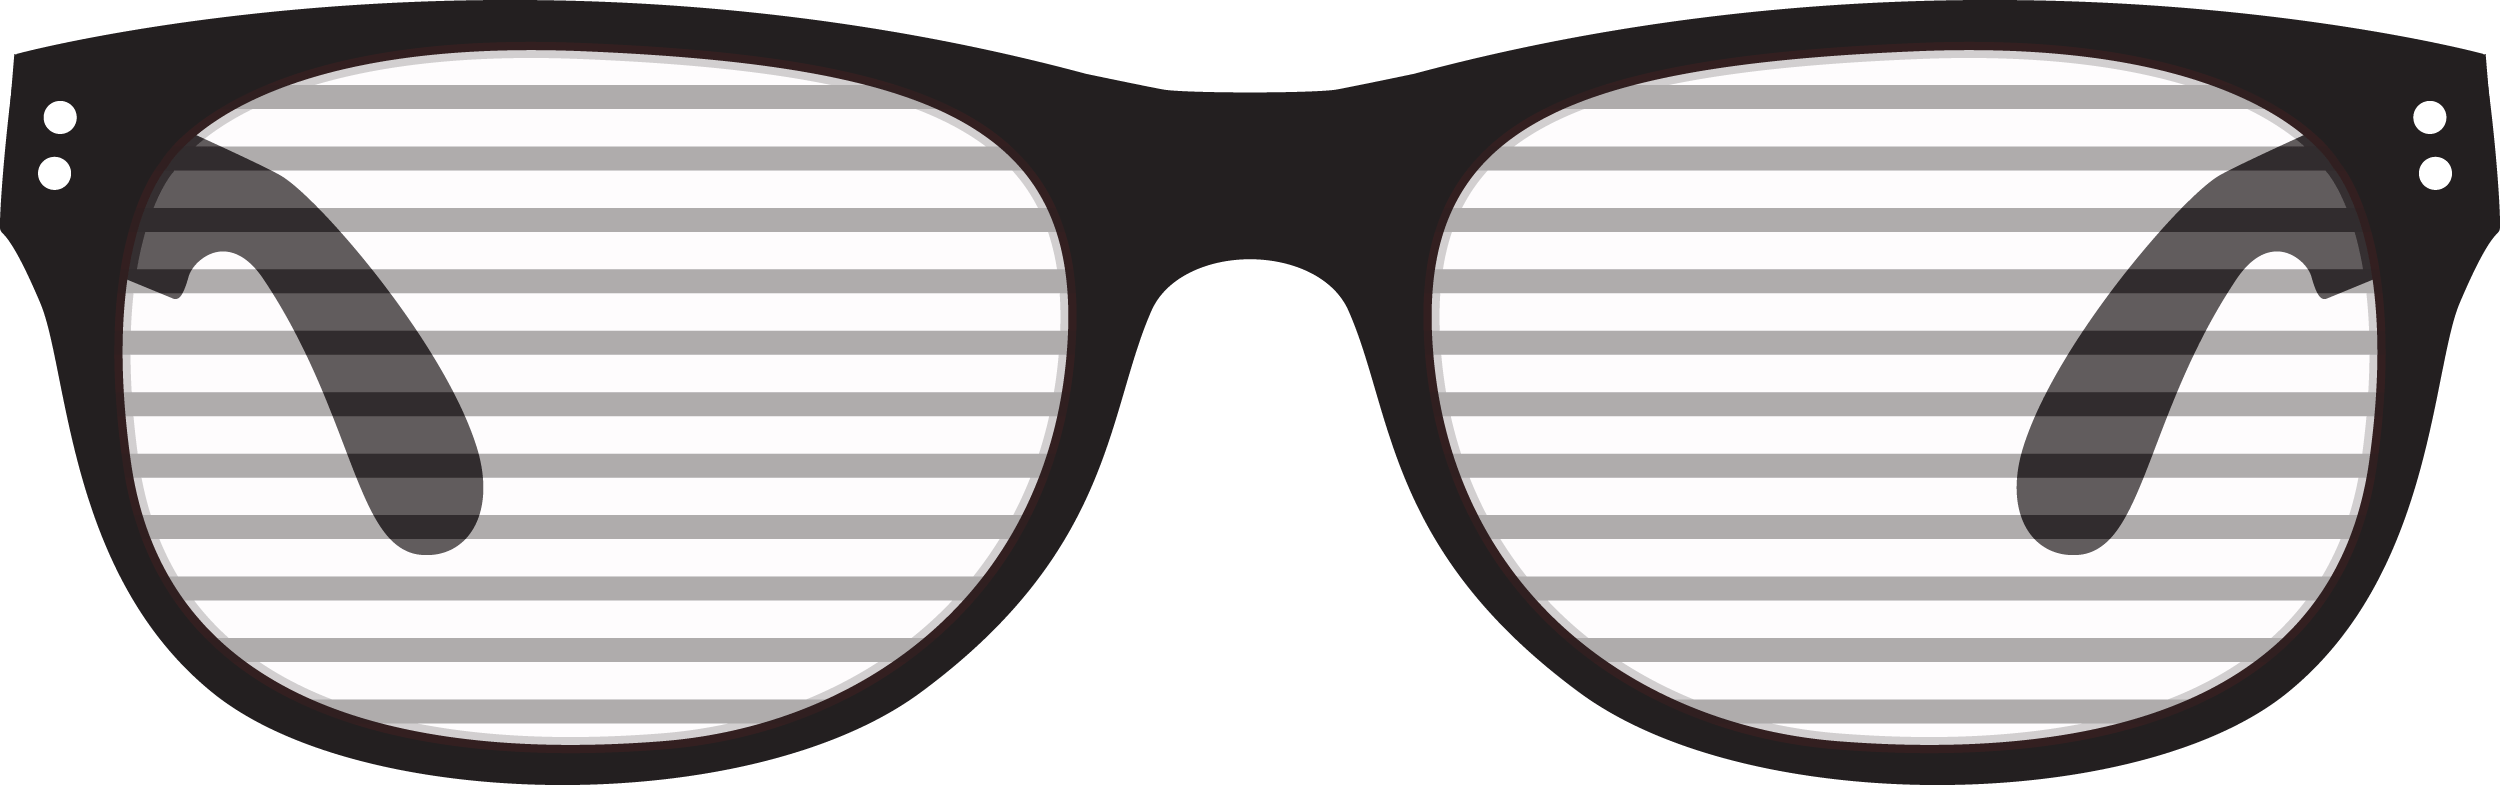 Party Shutter Glasses PNG 26